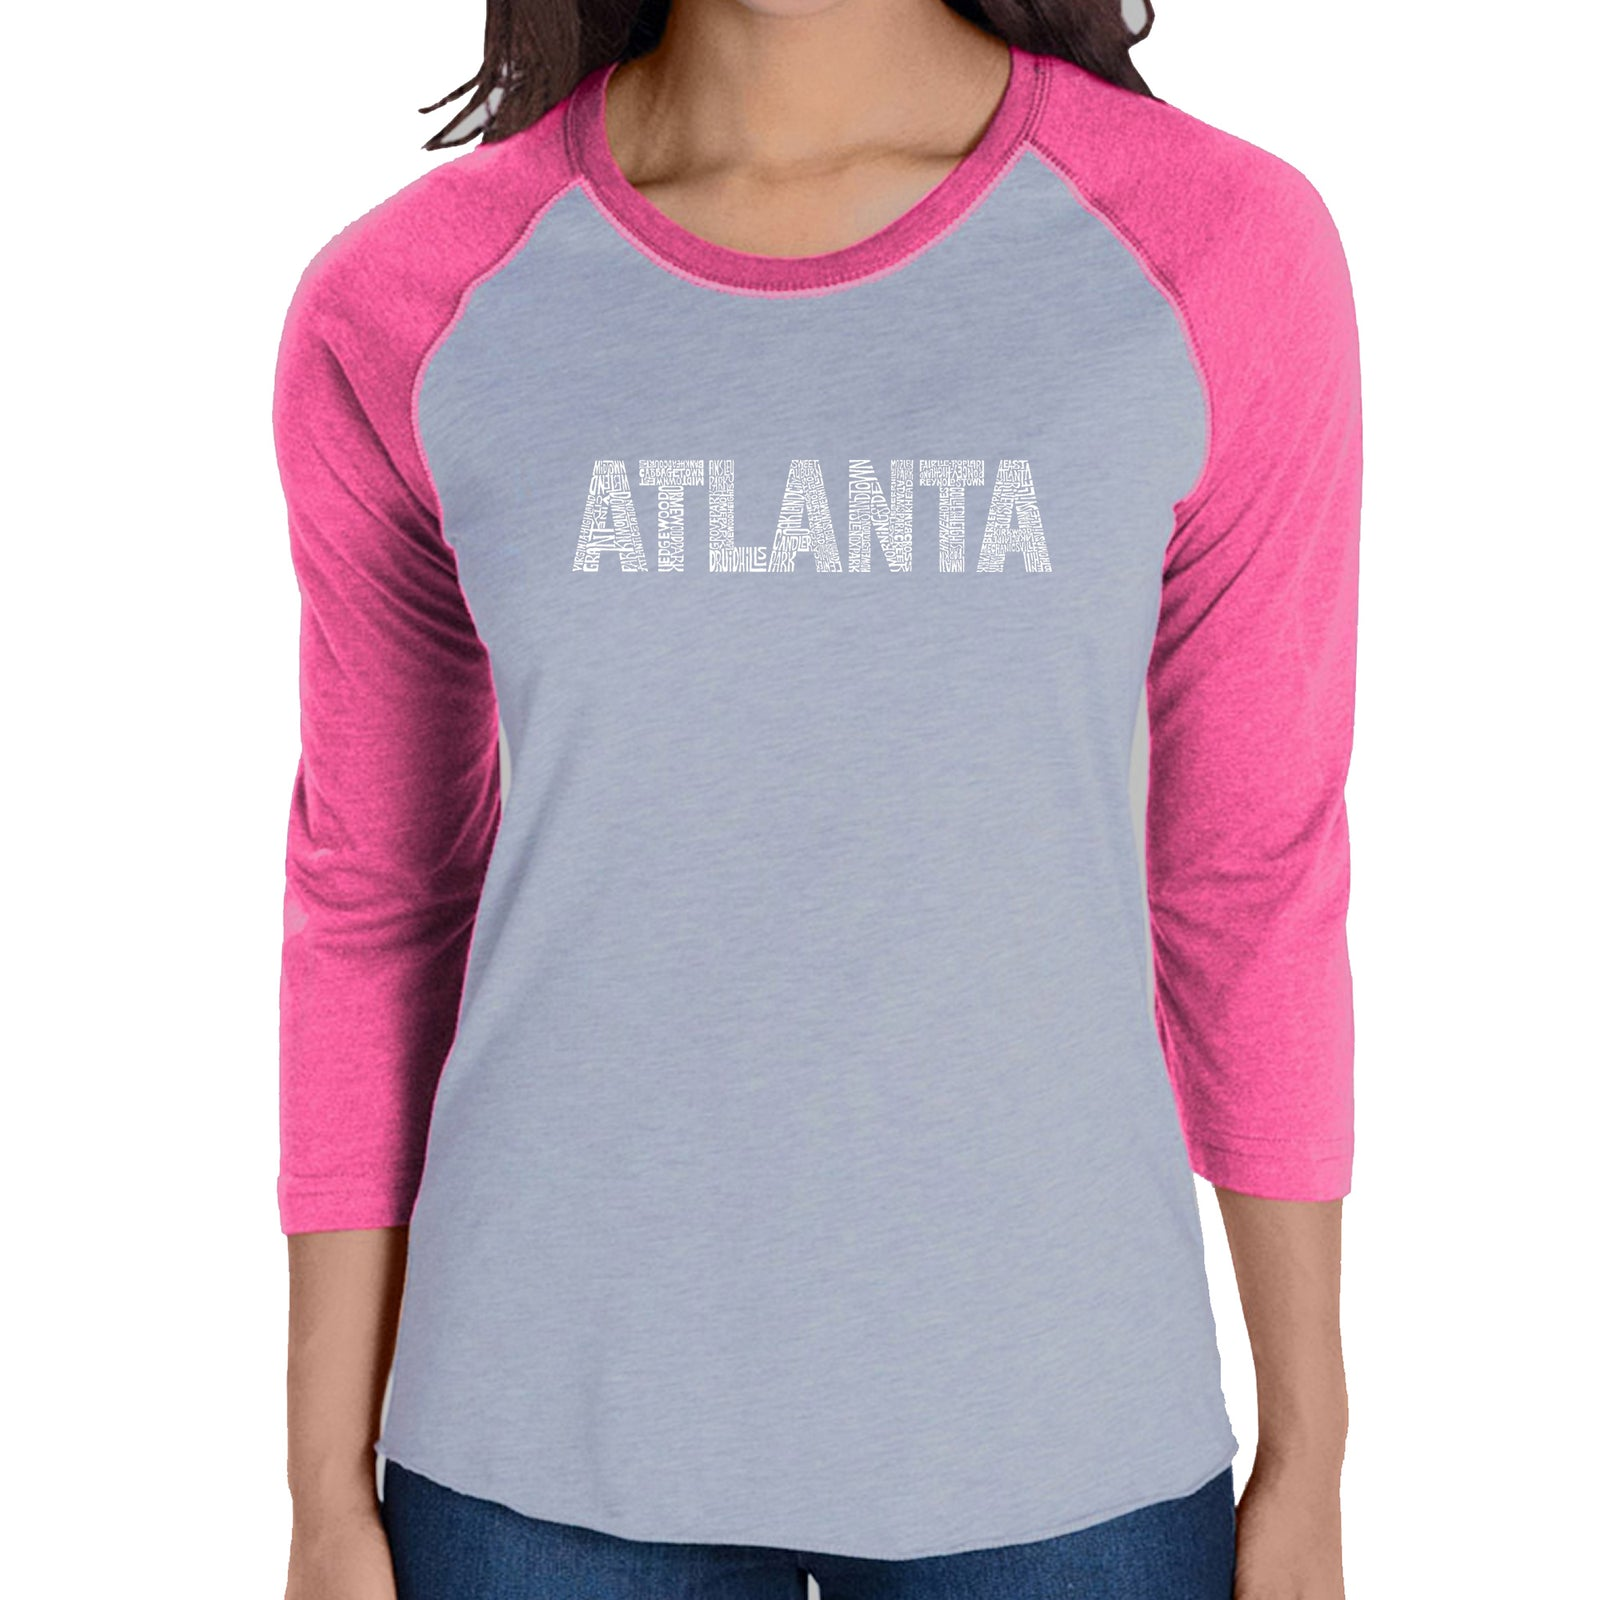 Women's Raglan Baseball Word Art T-shirt - ATLANTA NEIGHBORHOODS